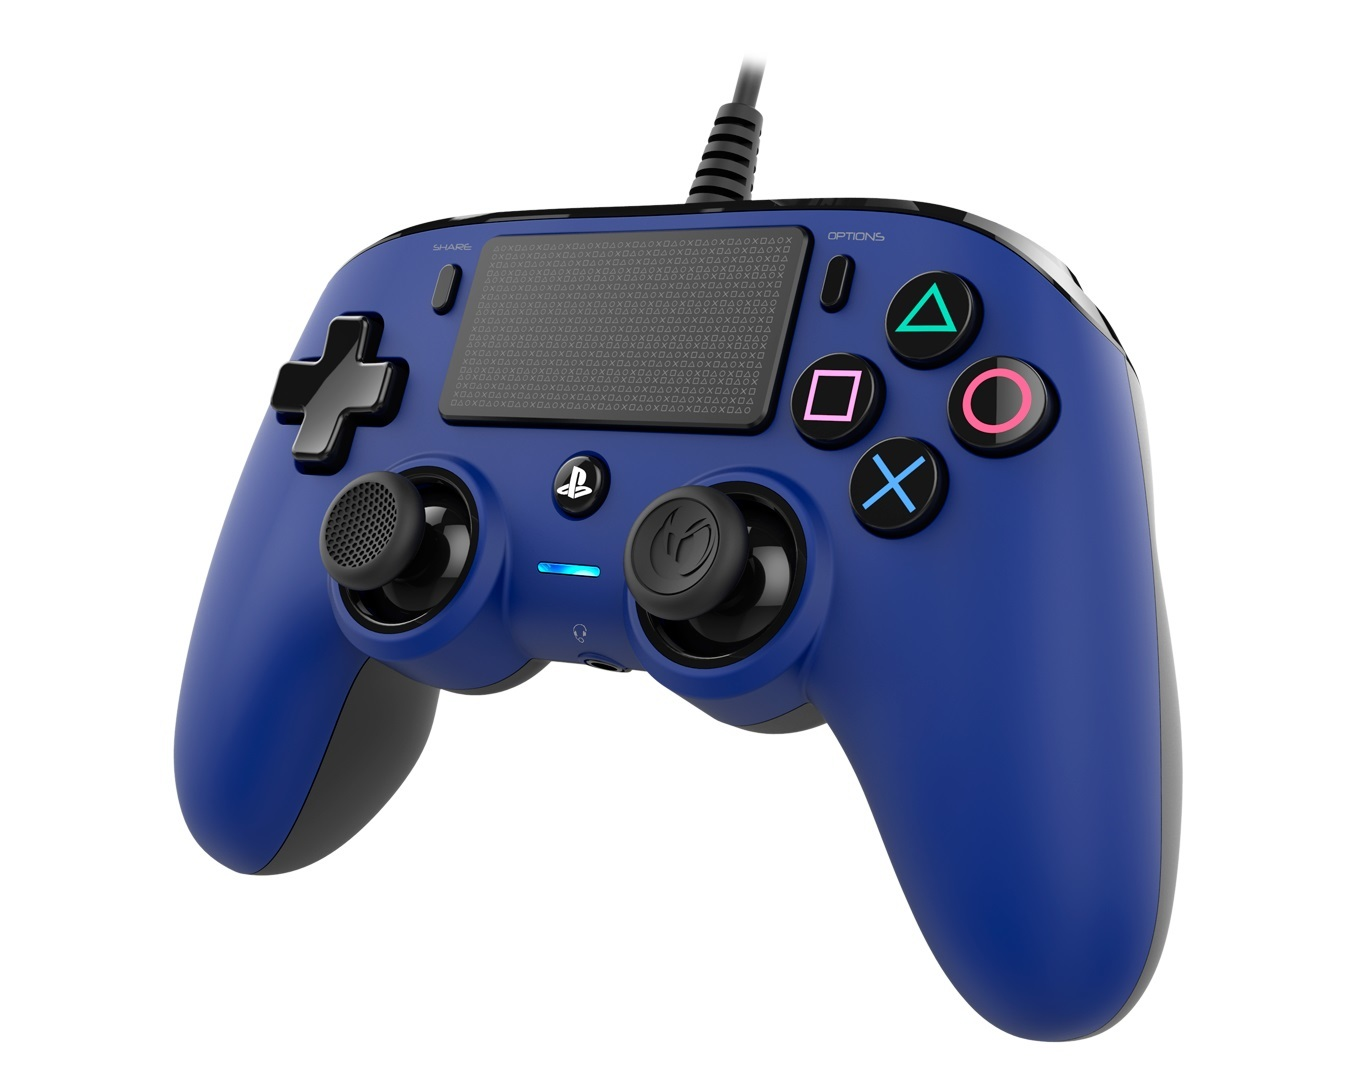 Nacon PS4 Wired Gaming Controller - Blue for PS4 image